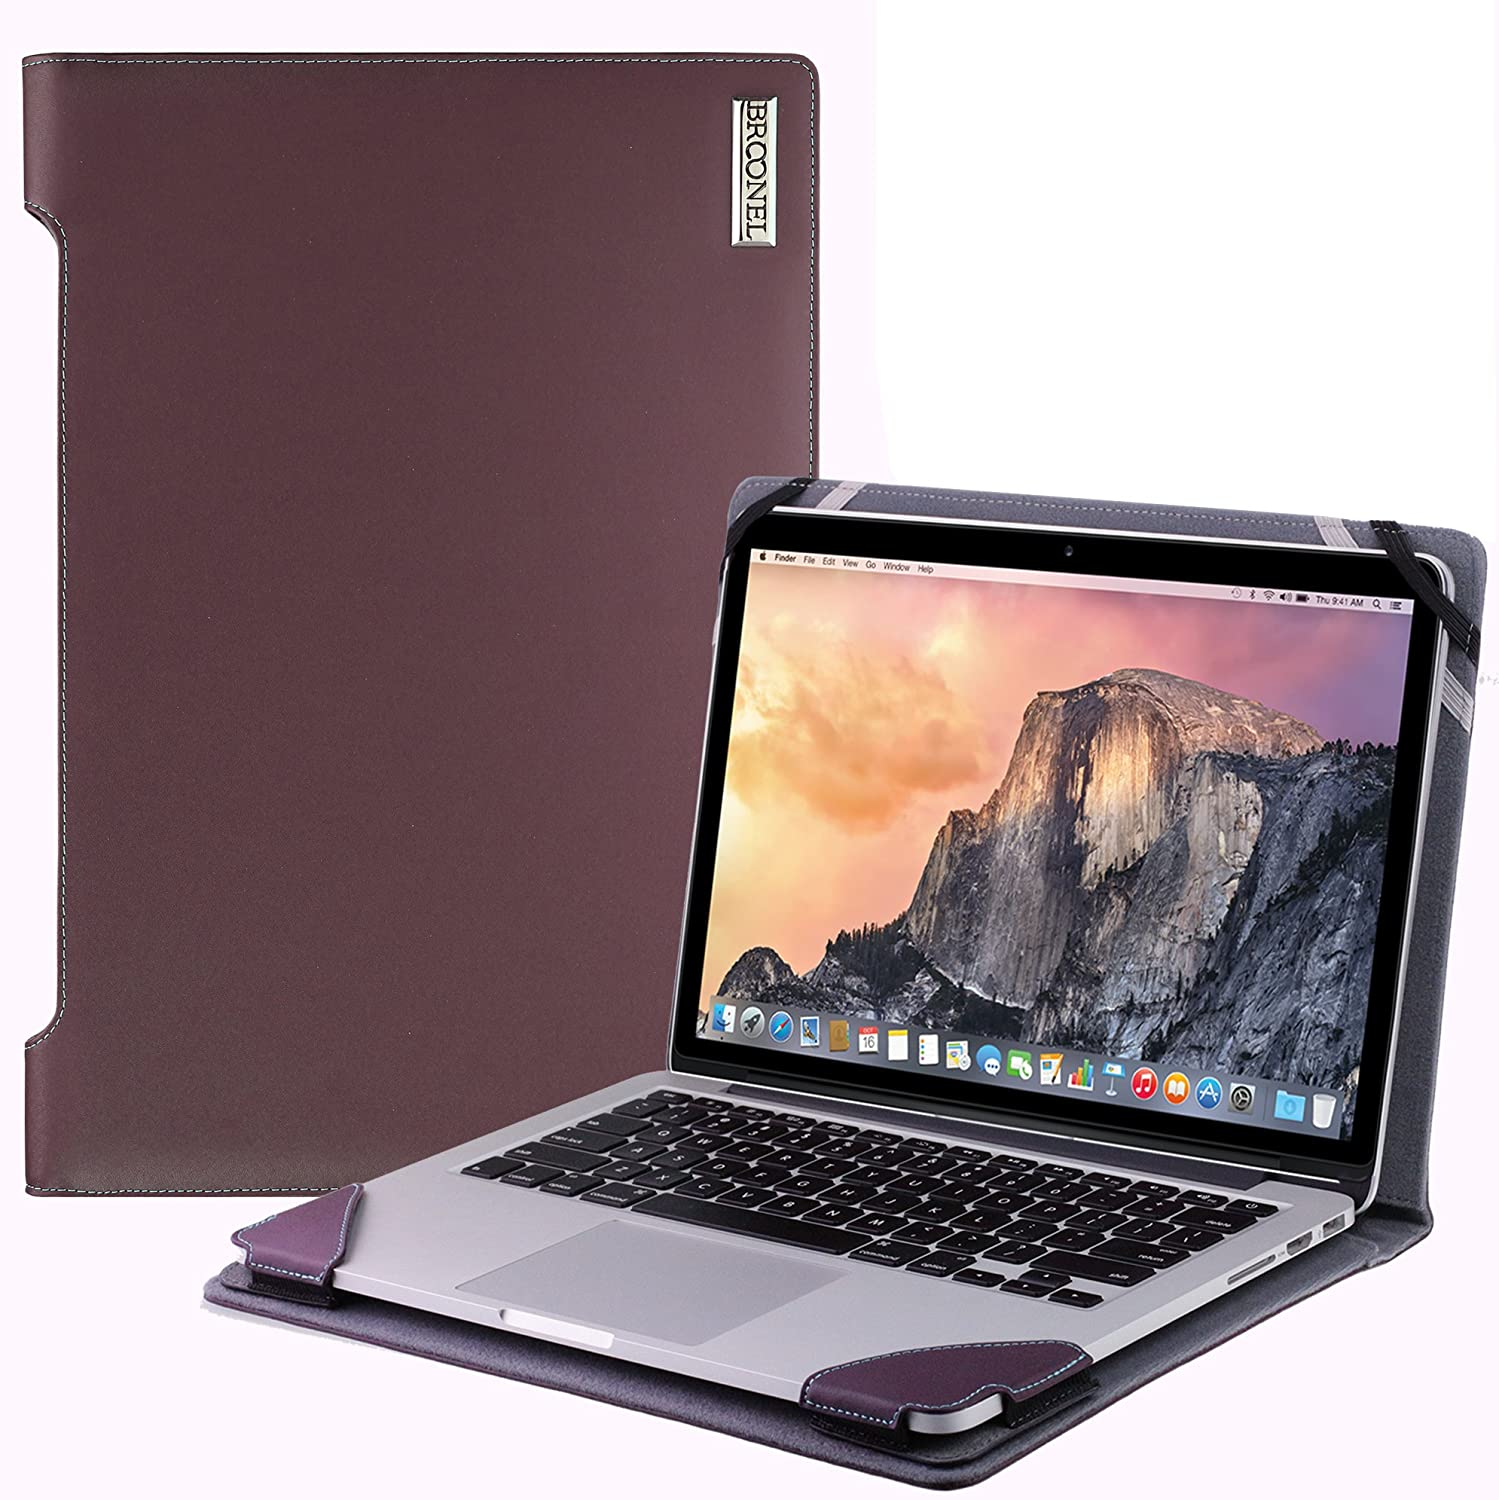 Broonel London - Profile Series - Purple Vegan Leather Luxury Laptop Case Compatible with The Acer Aspire V13 (V3-371)